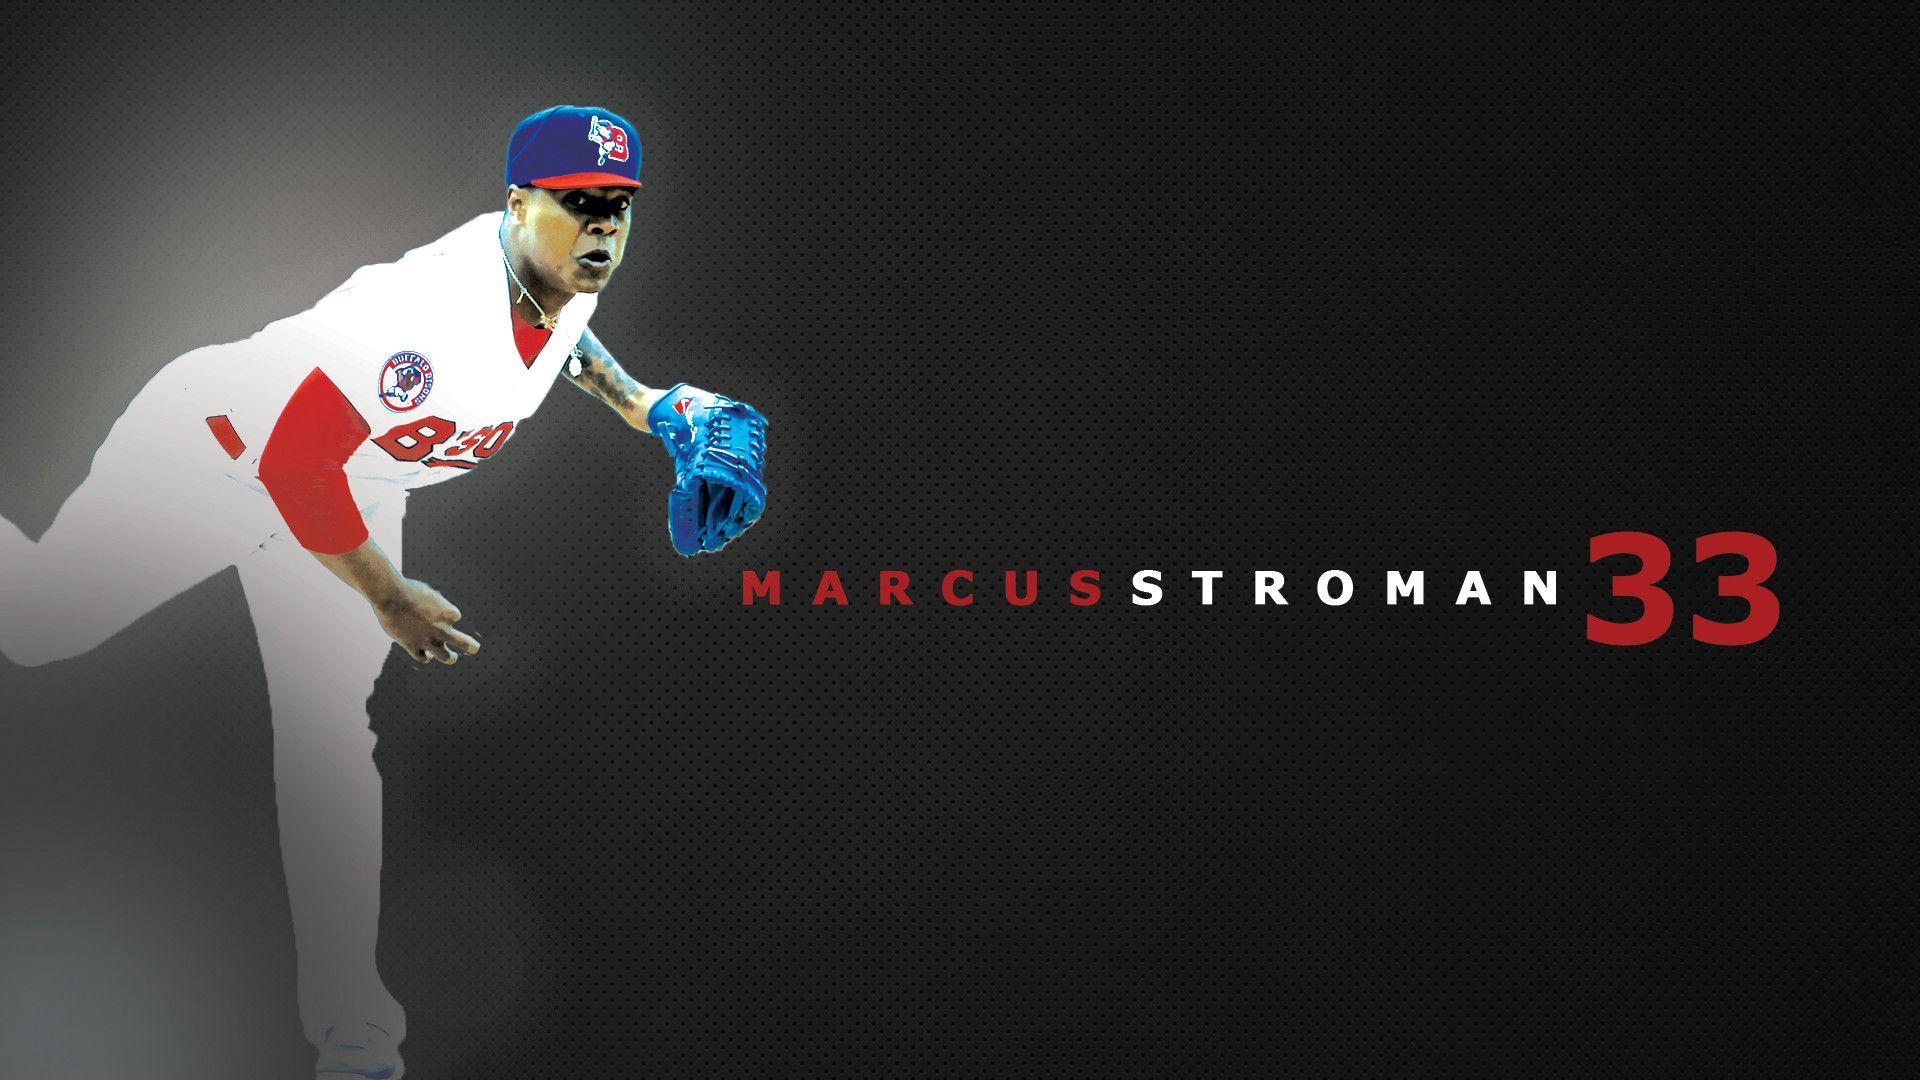 Phillies Wallpaper 2018 60 Images